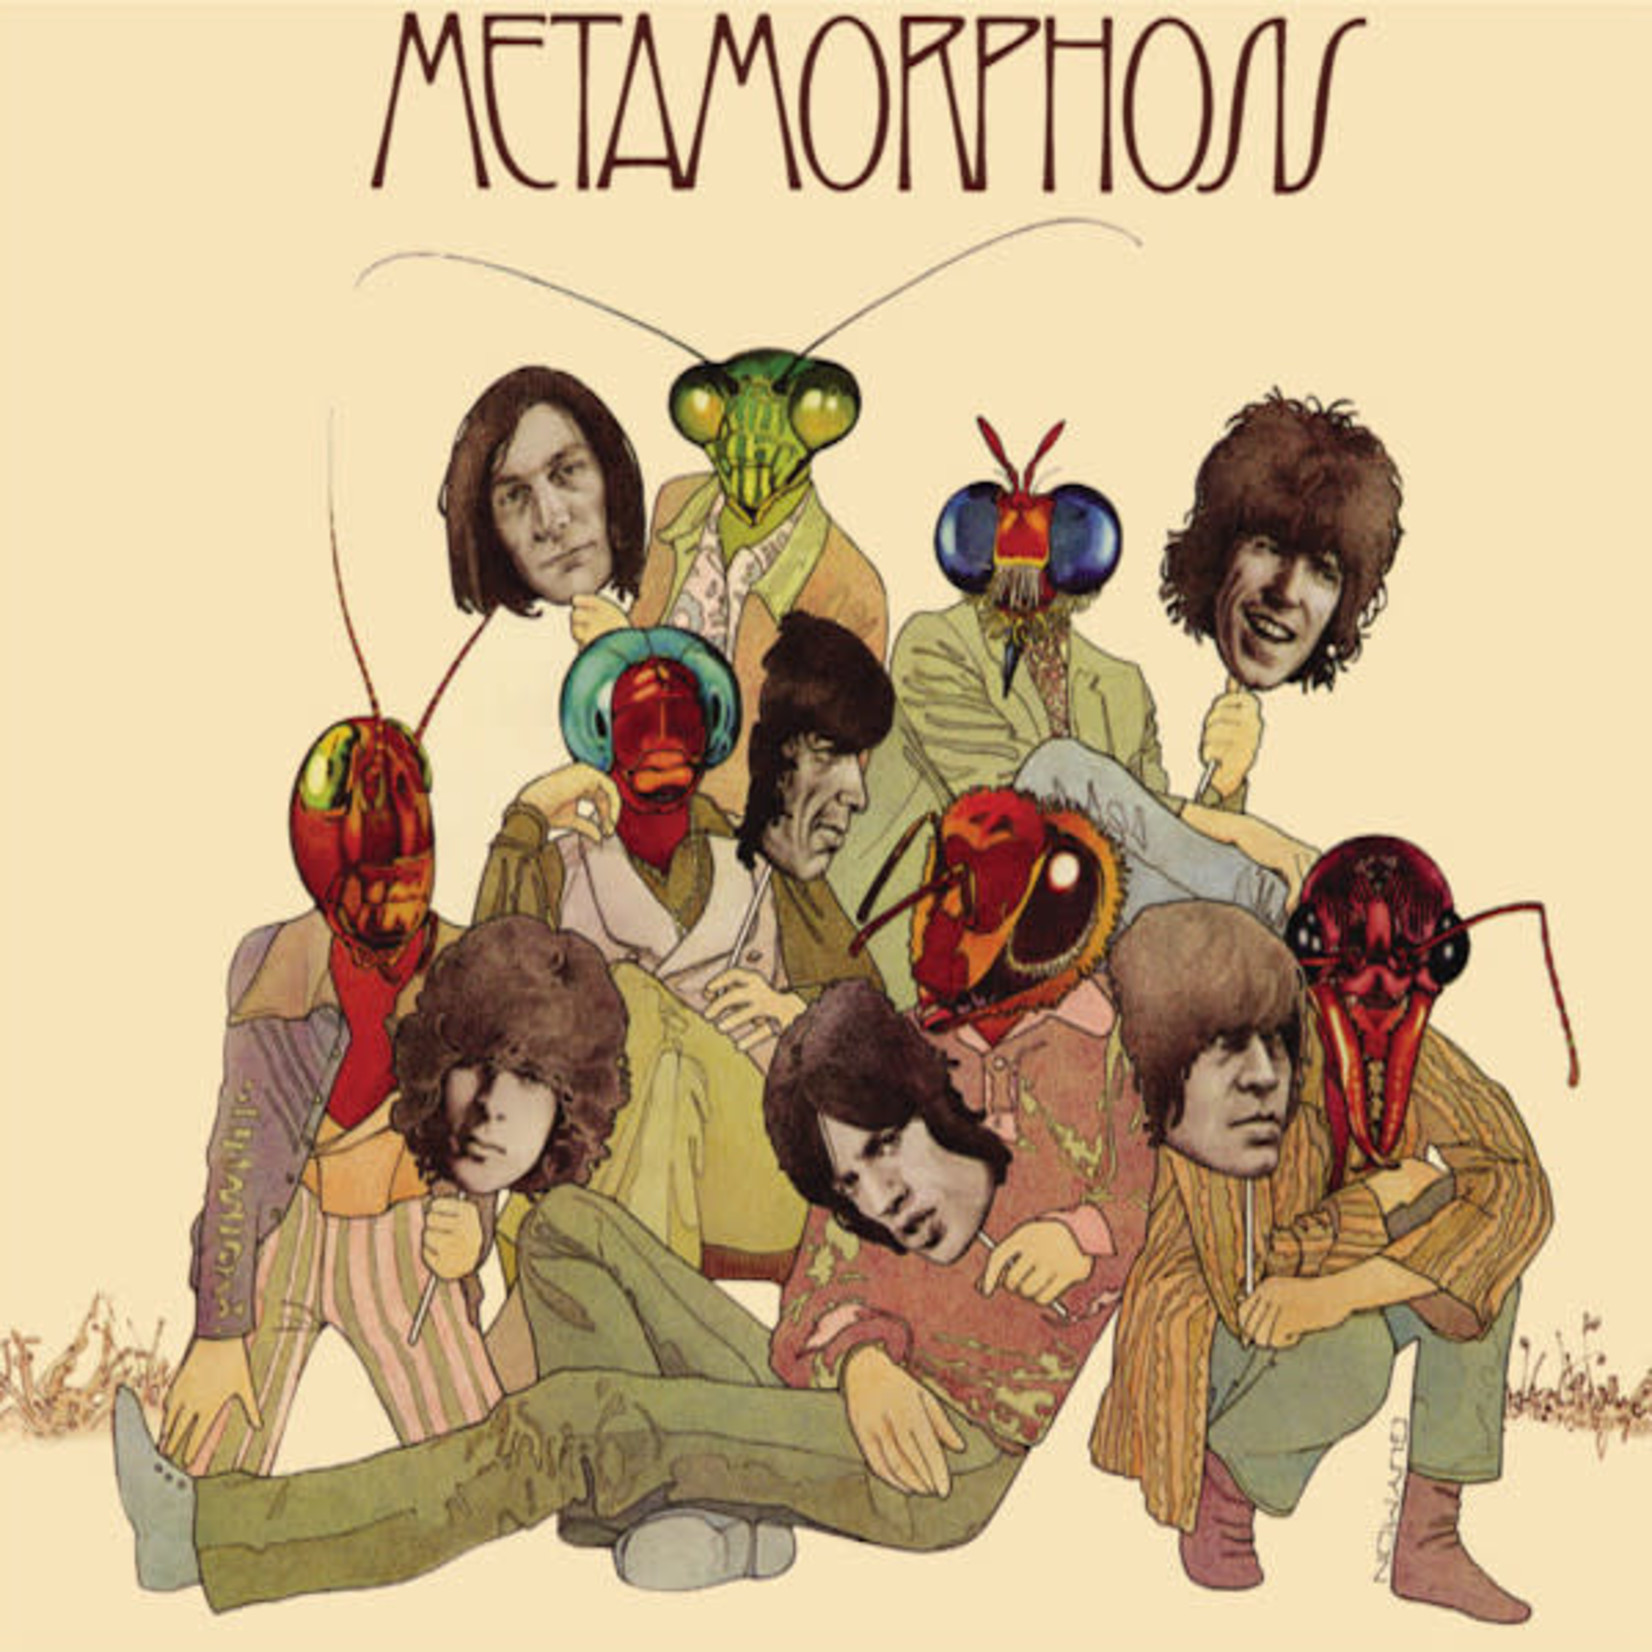 Vinyl The Rolling Stones - Metamorphosis